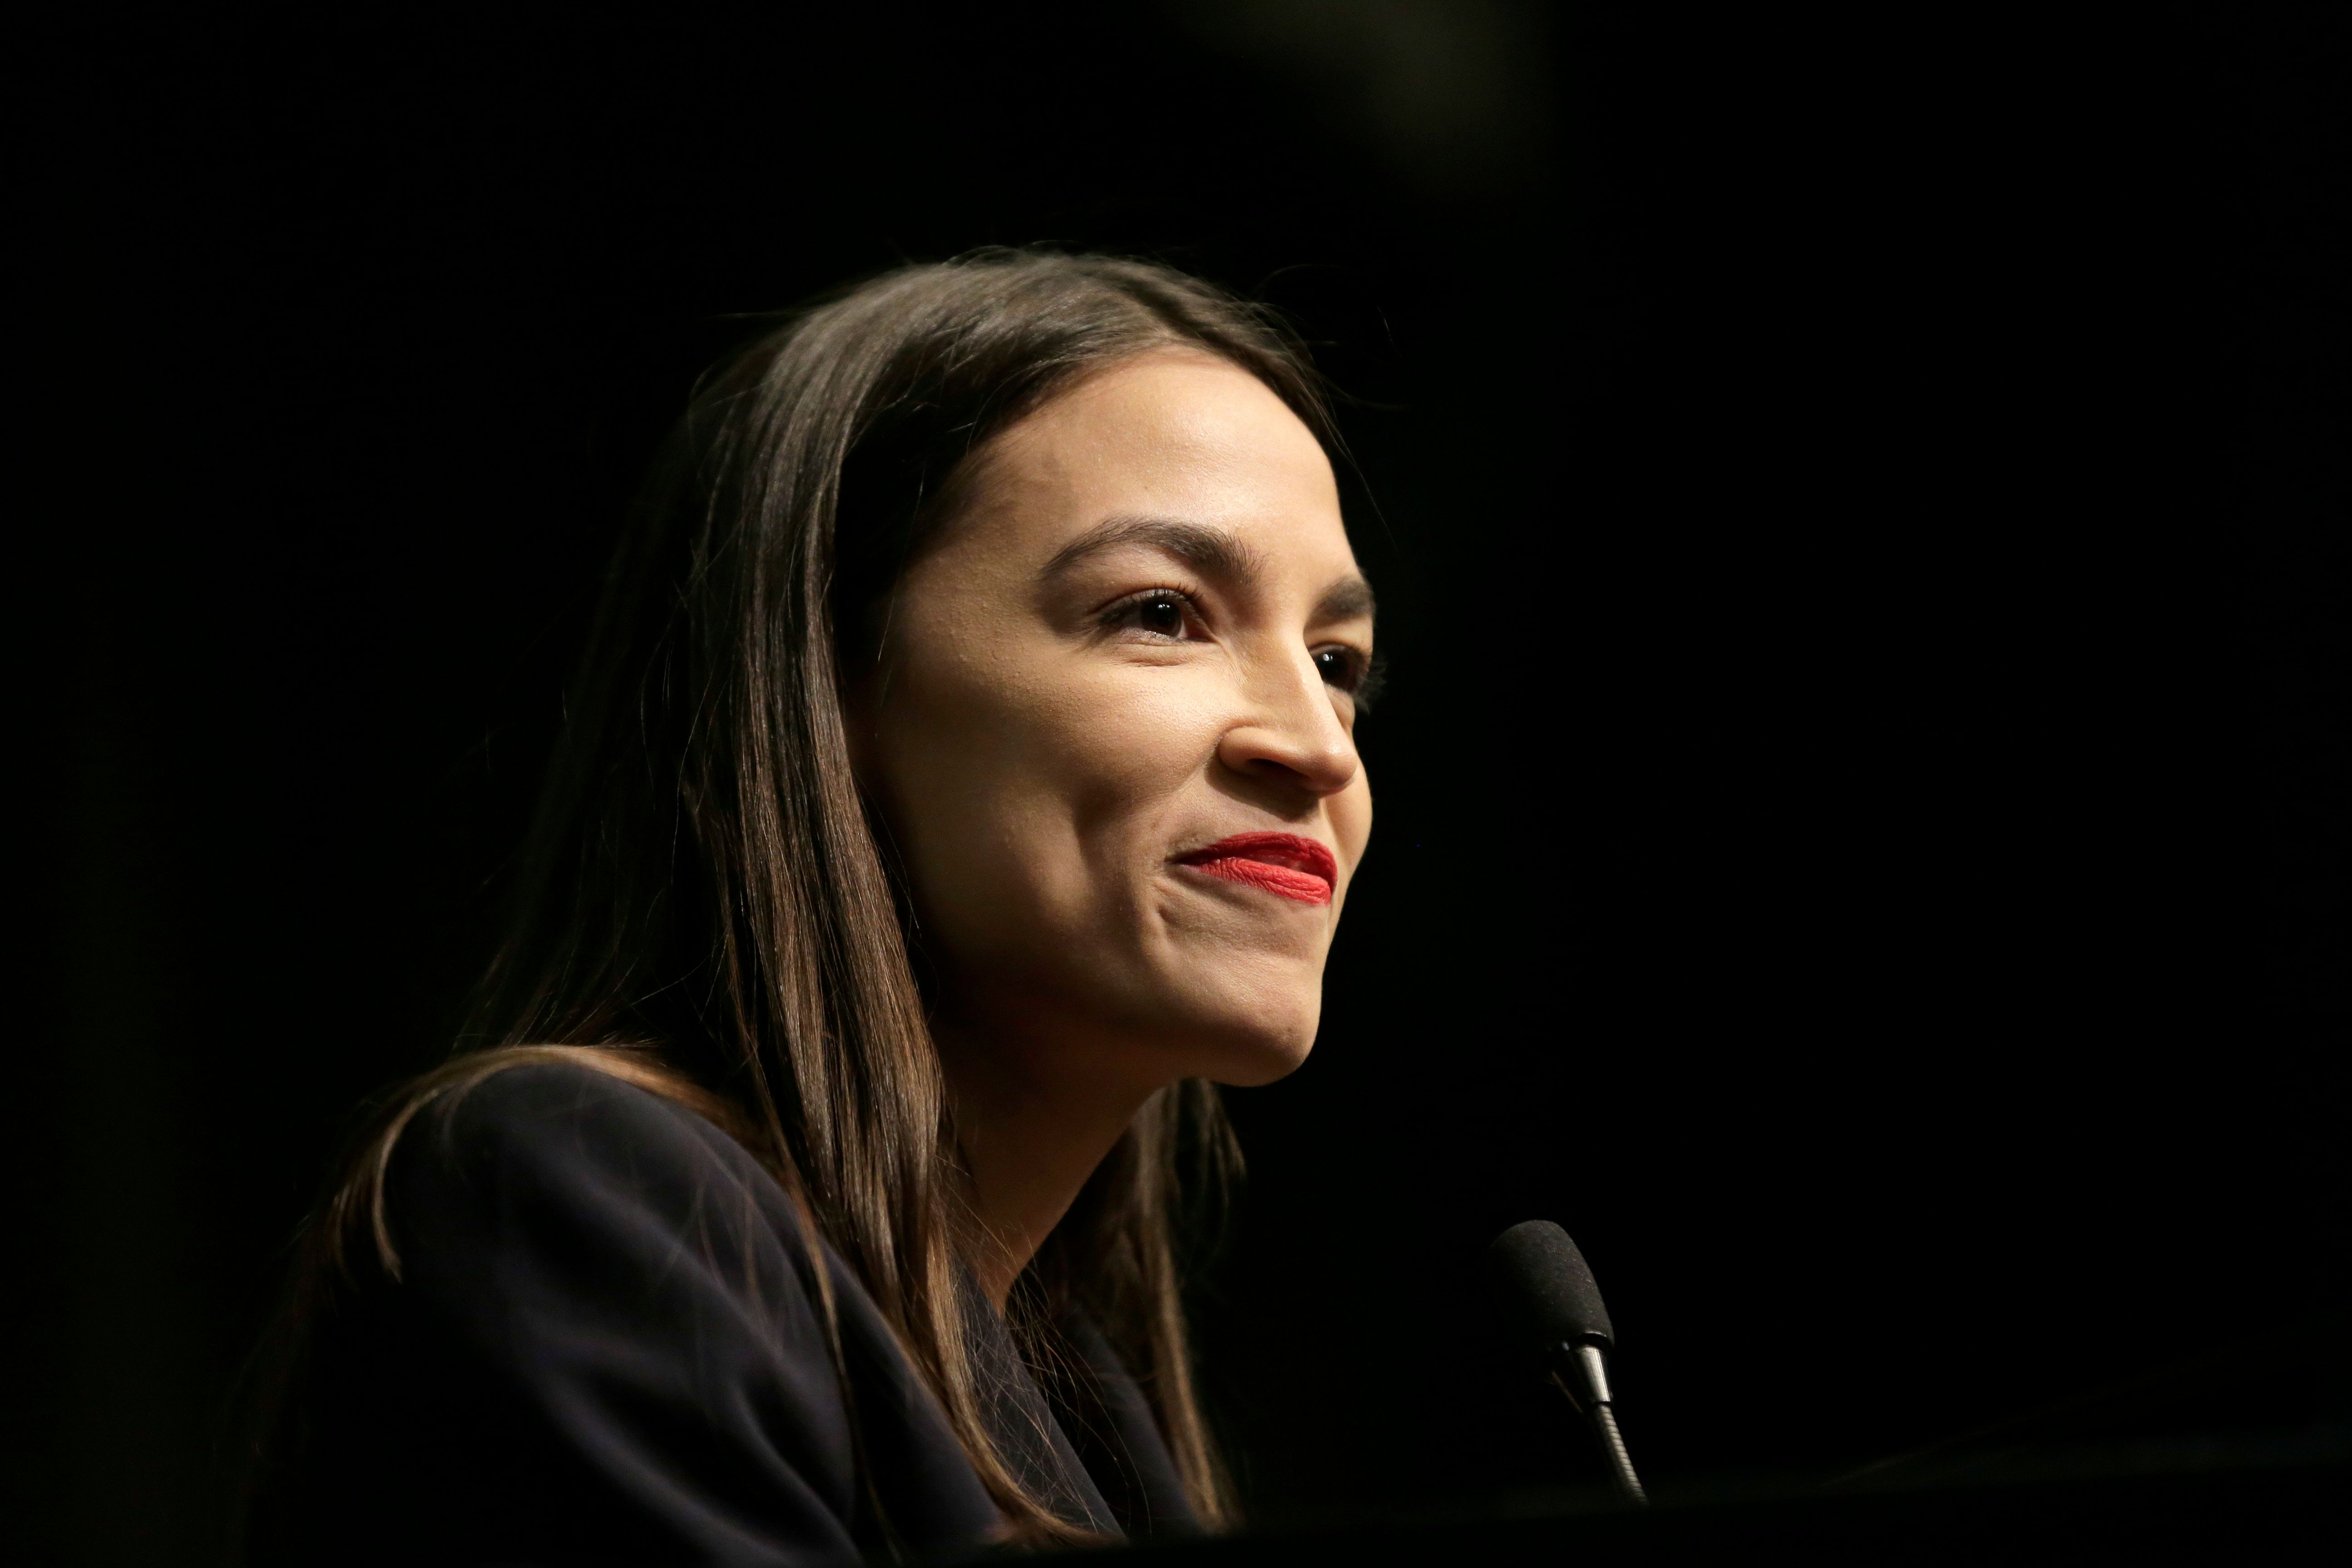 U.S. Rep. Alexandria Ocasio-Cortez, D-N.Y., speaks during the National Action Network Convention in New York, Friday, April 5, 2019. (AP Photo/Seth Wenig)